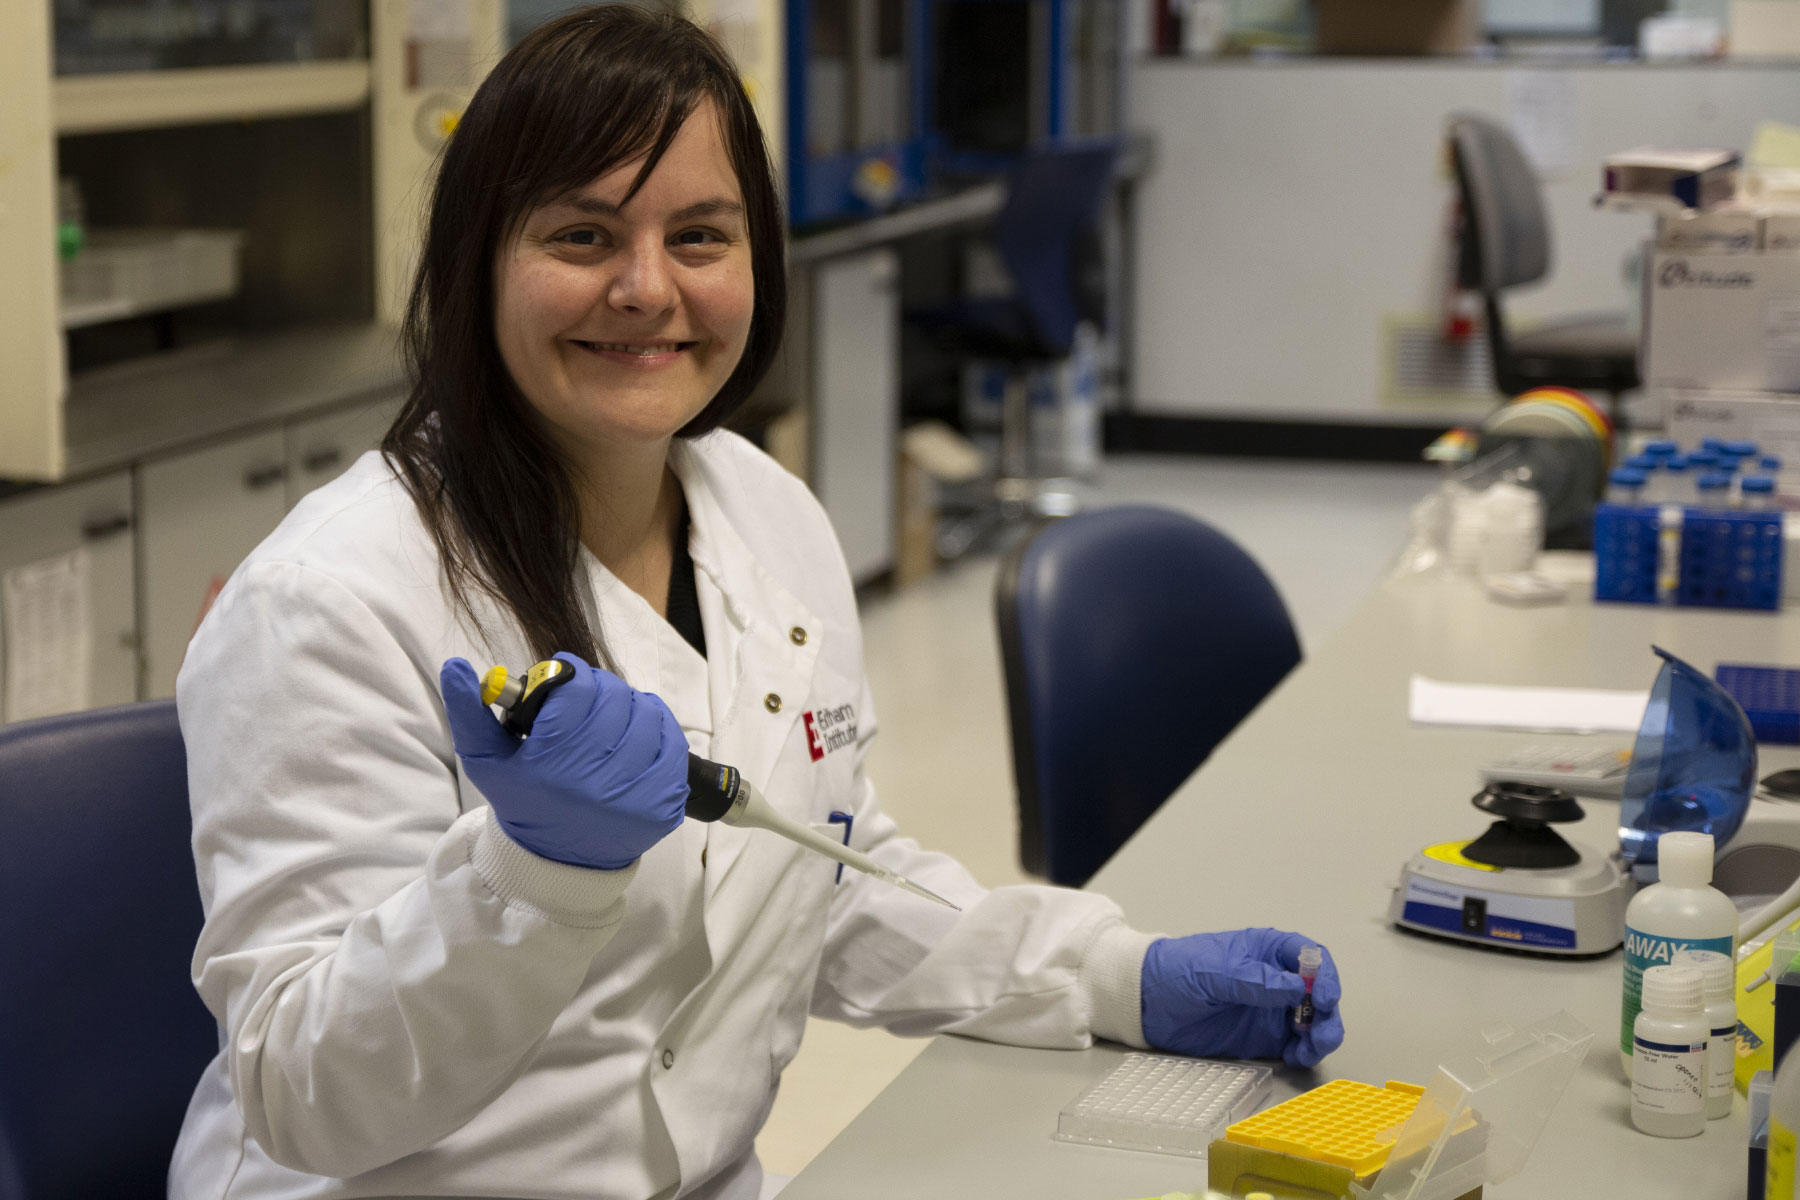 Image: Dr Laura Mincarelli pictured in the single cell labs at EI